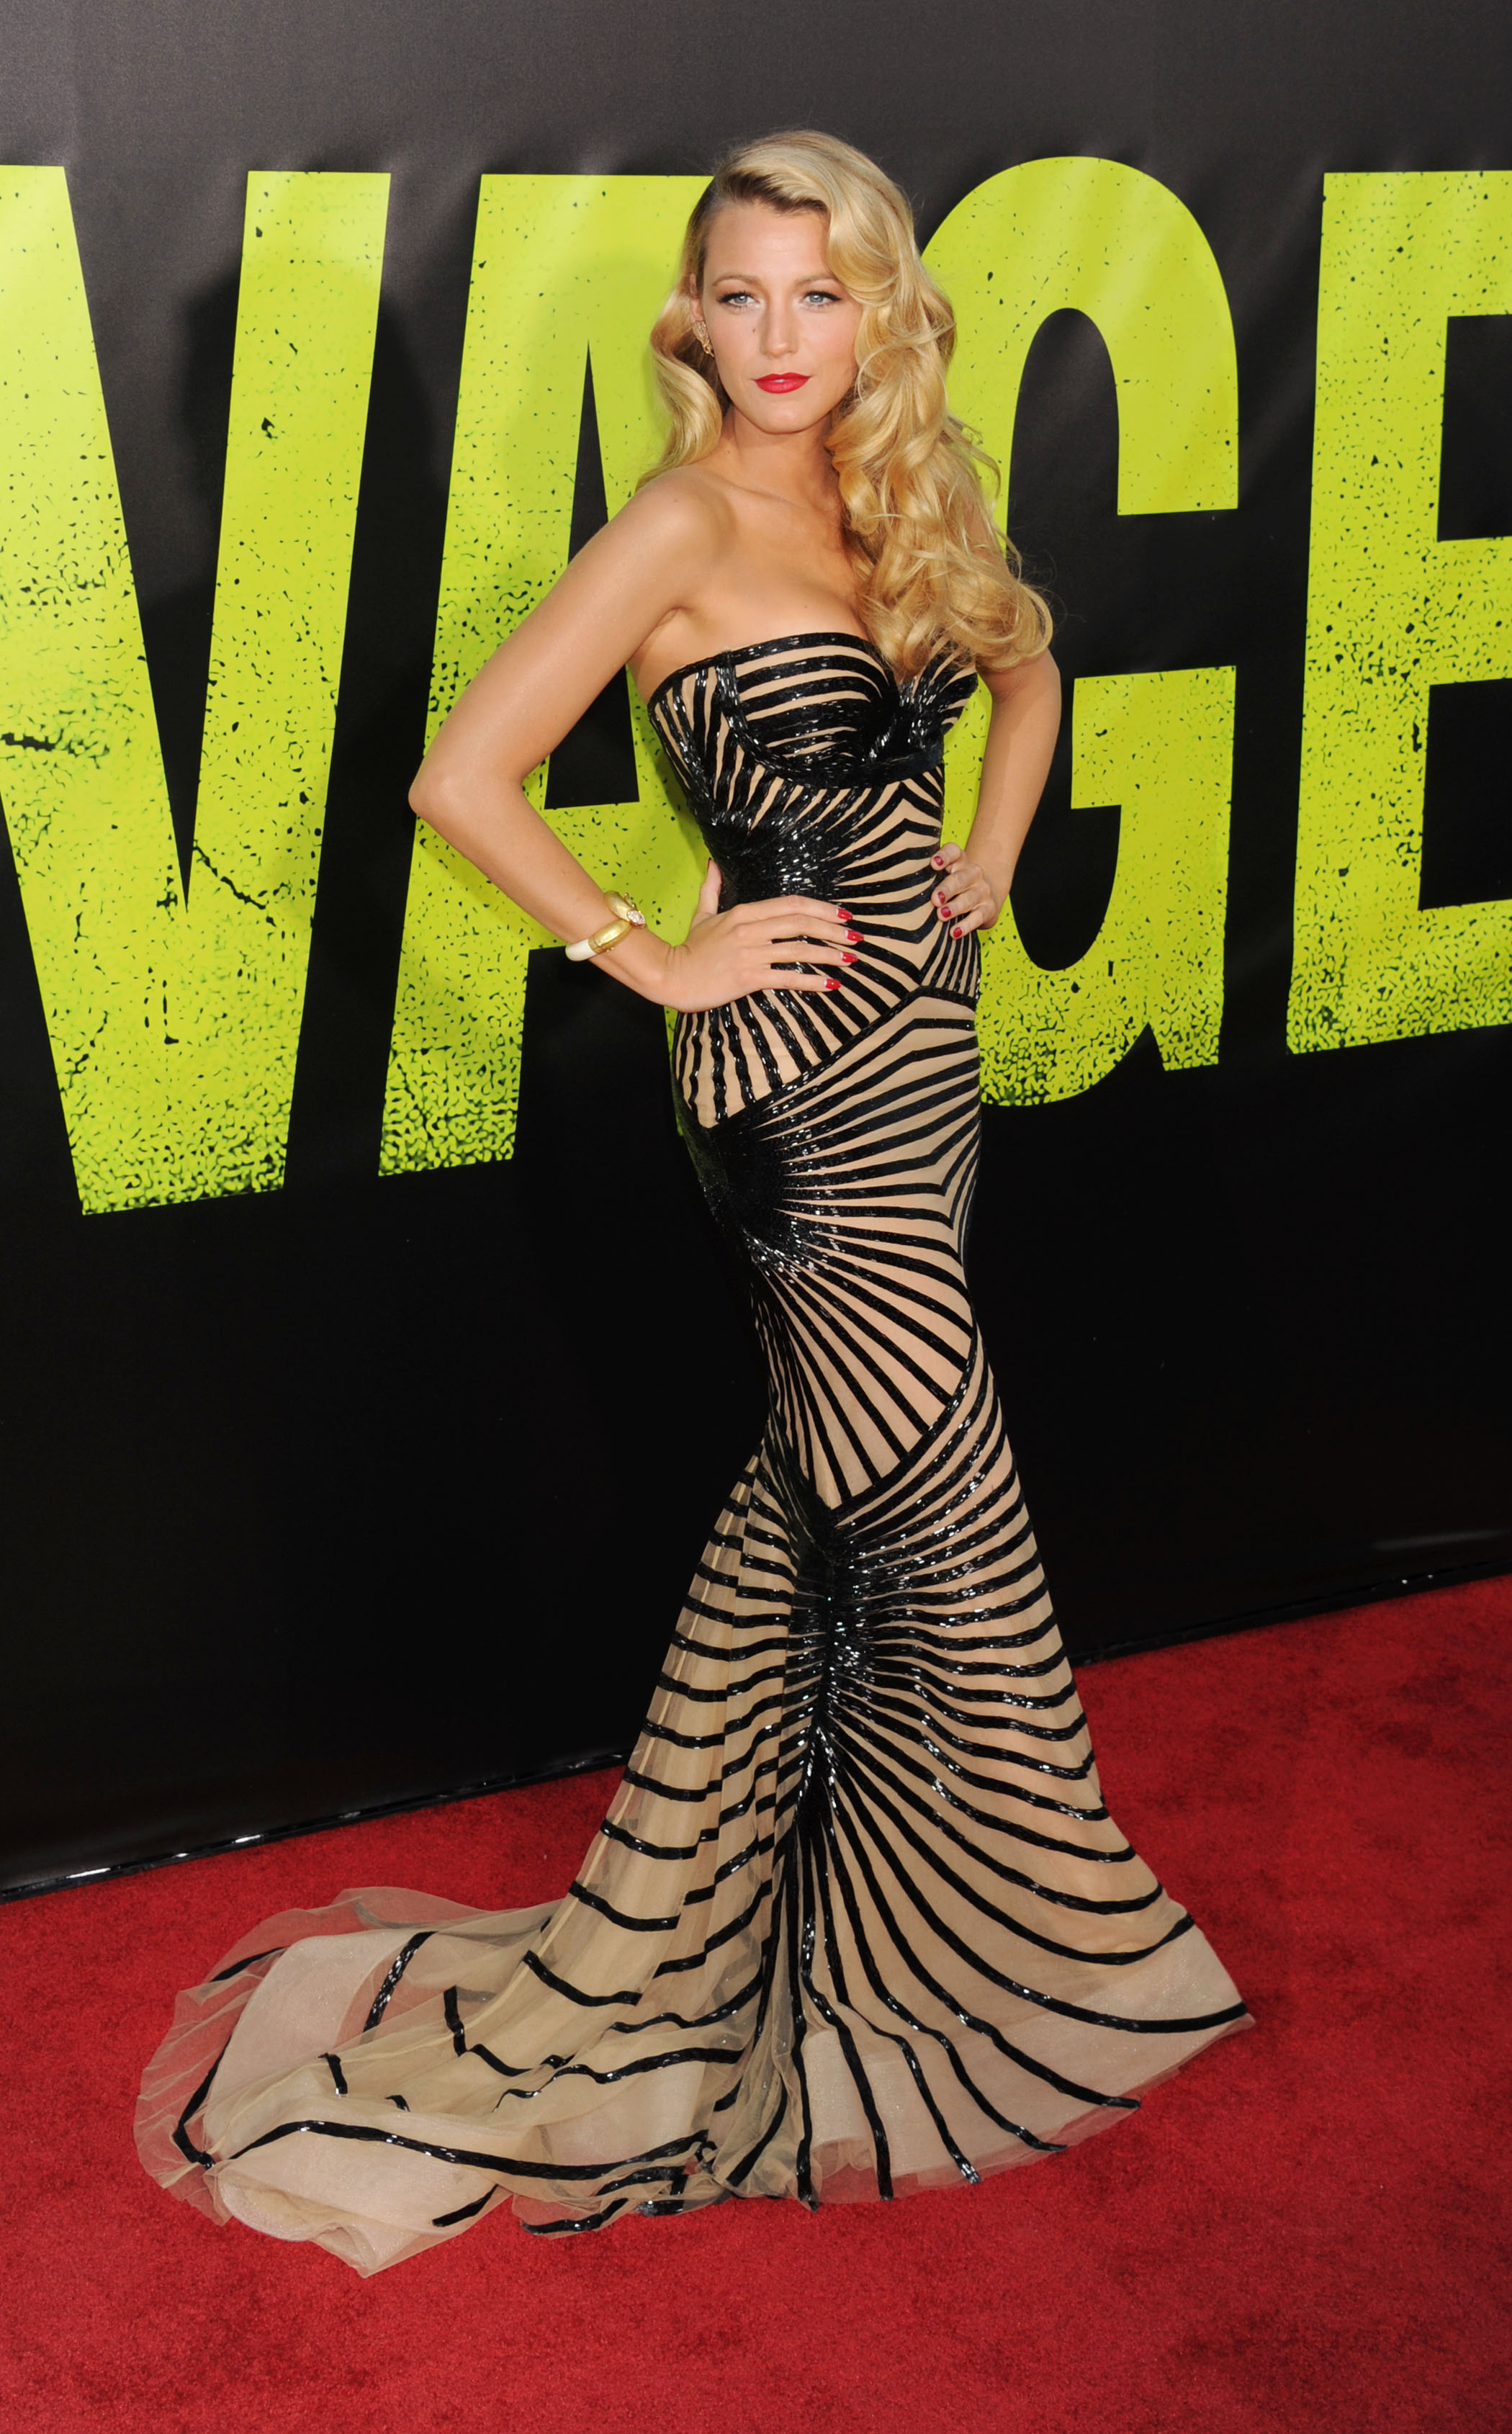 Buon compleanno Blake Lively